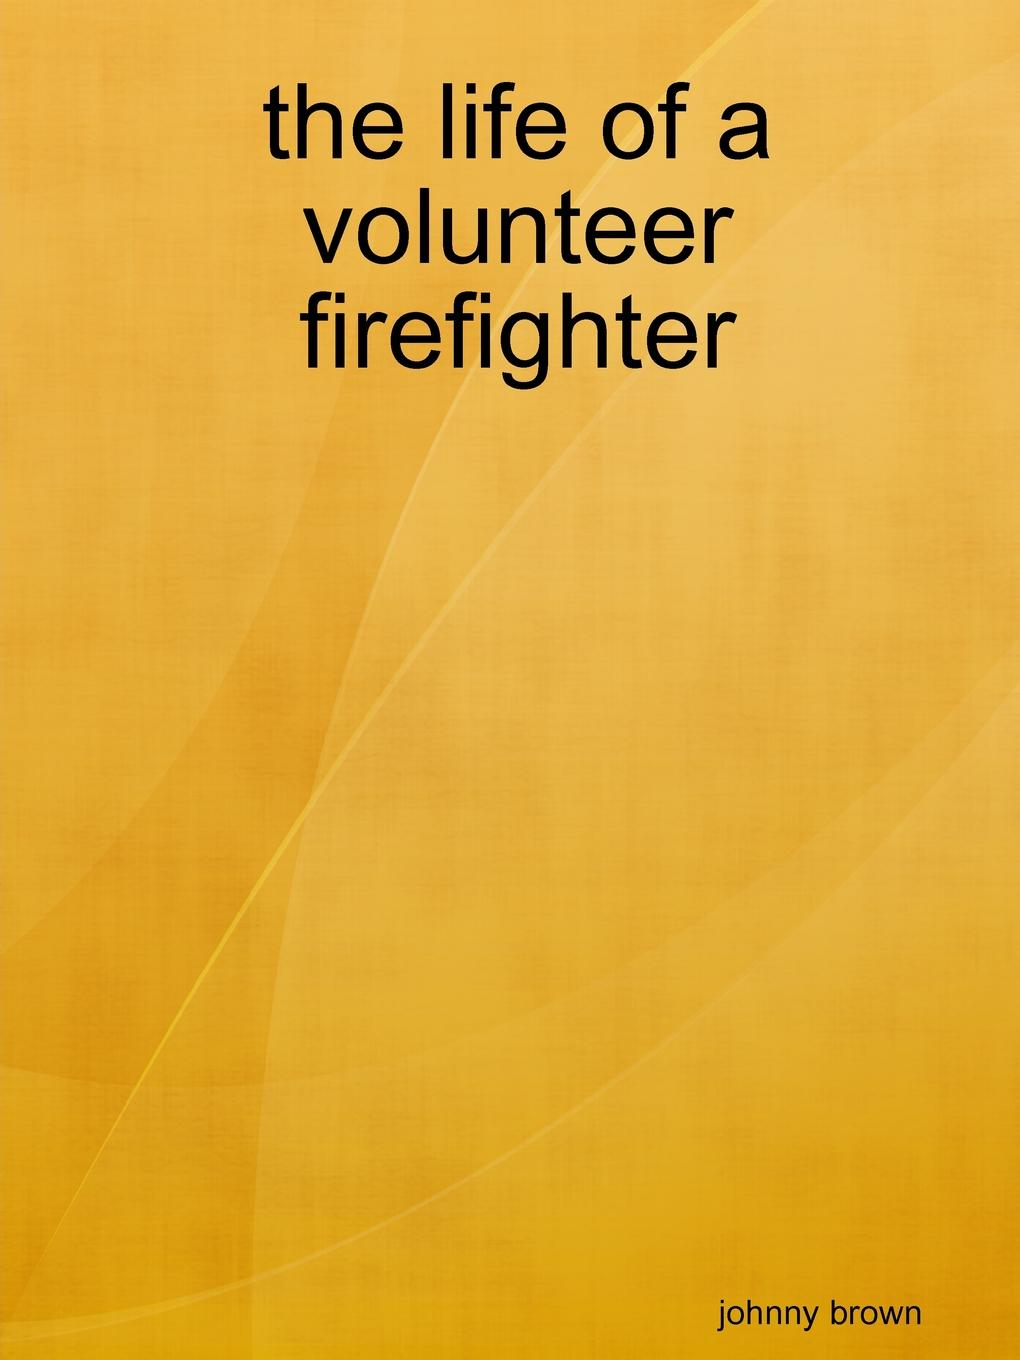 johnny brown the life of a volunteer firefighter about a boy